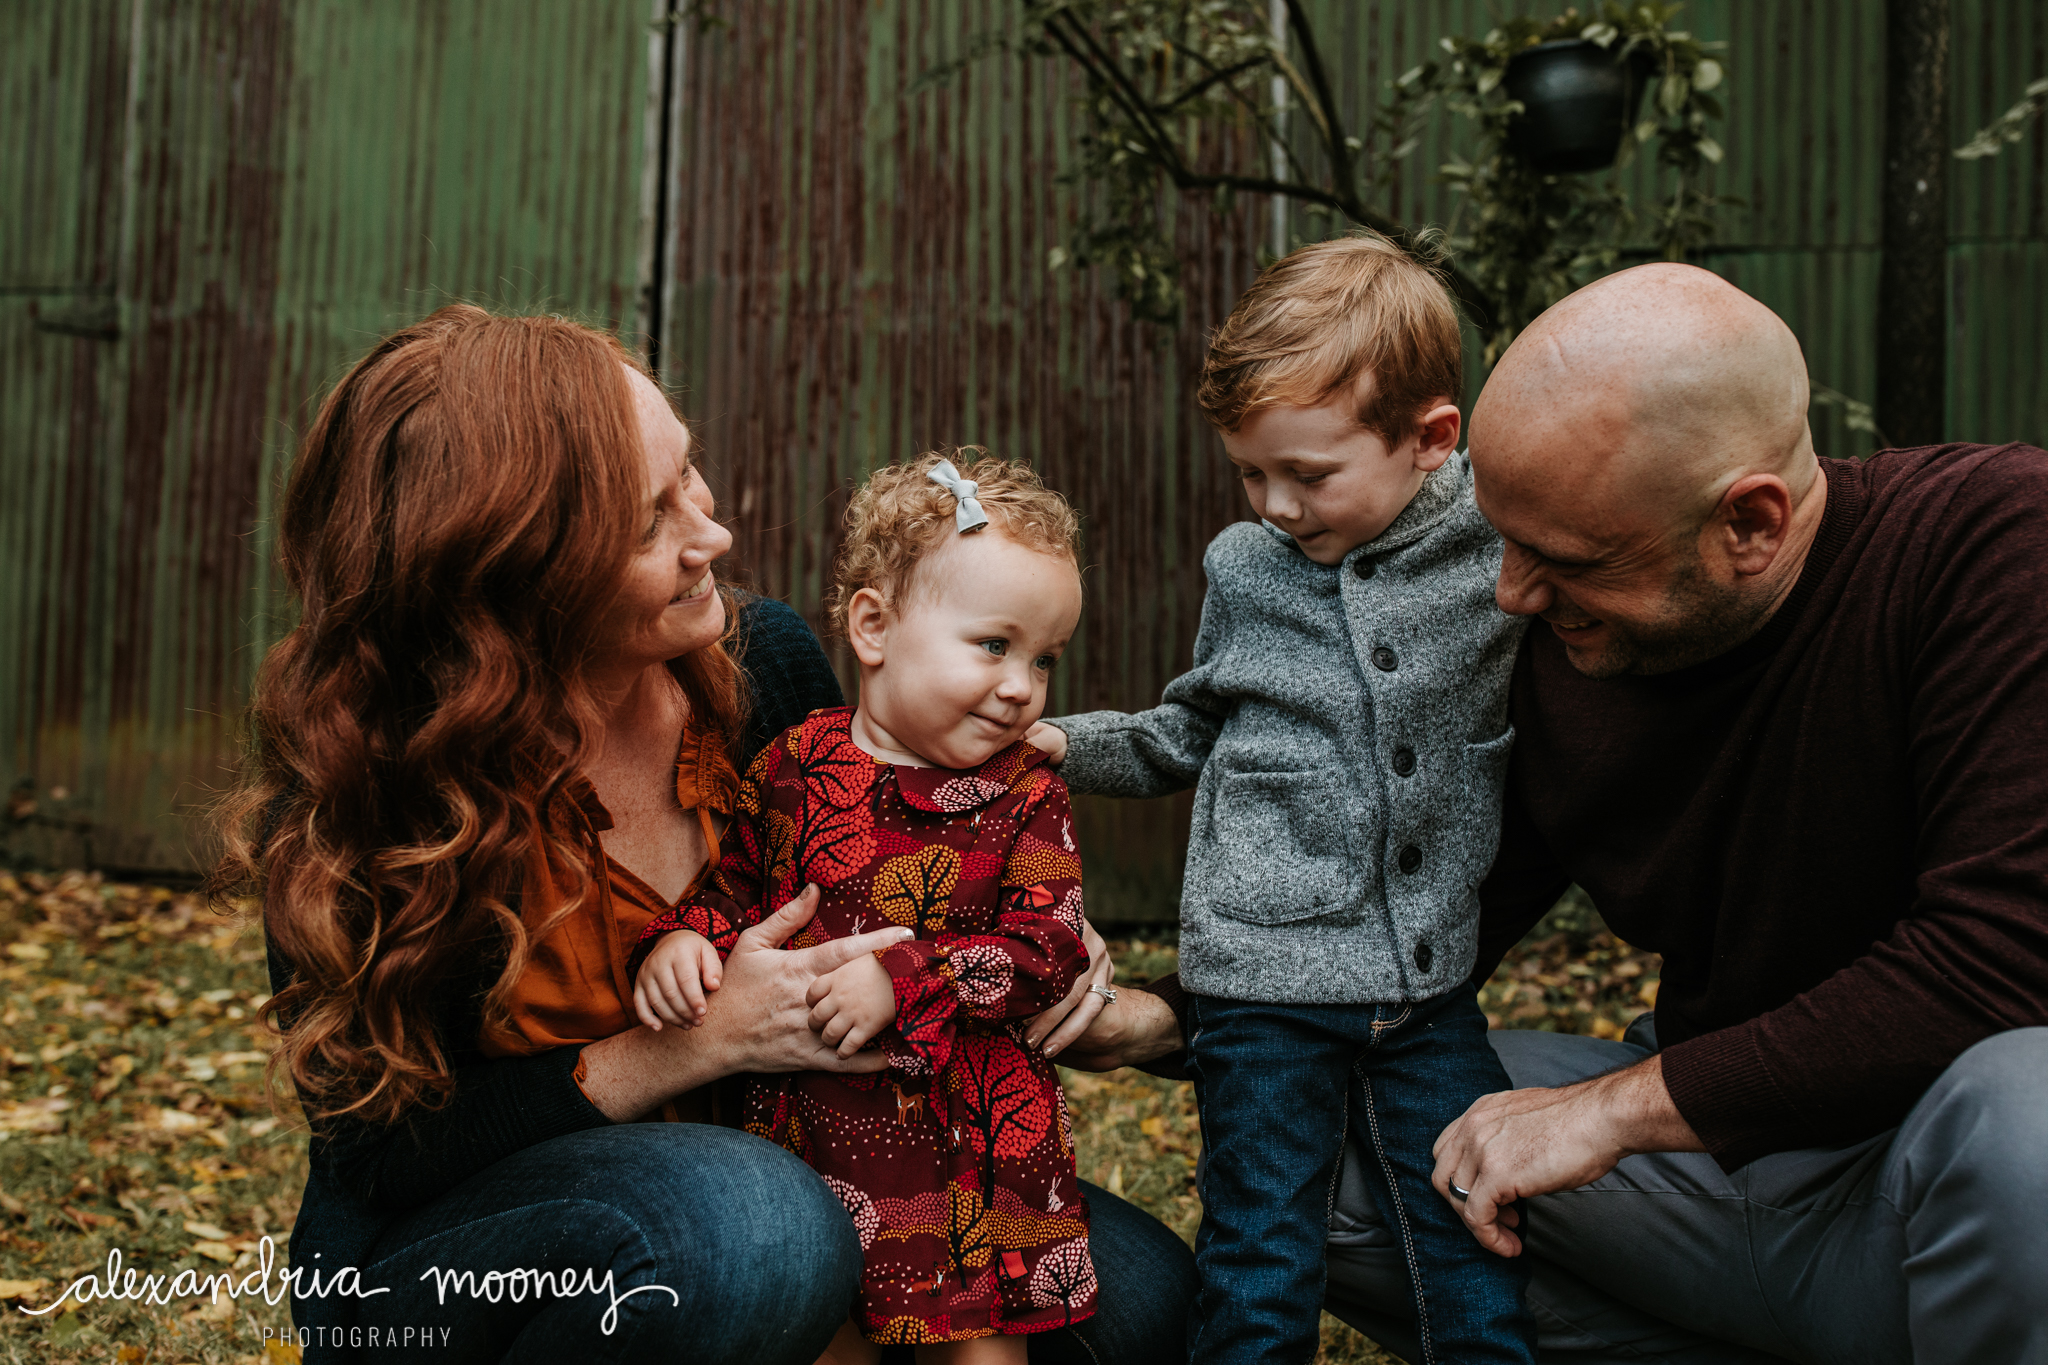 TheMerzFamily_Watermarked-1.jpg